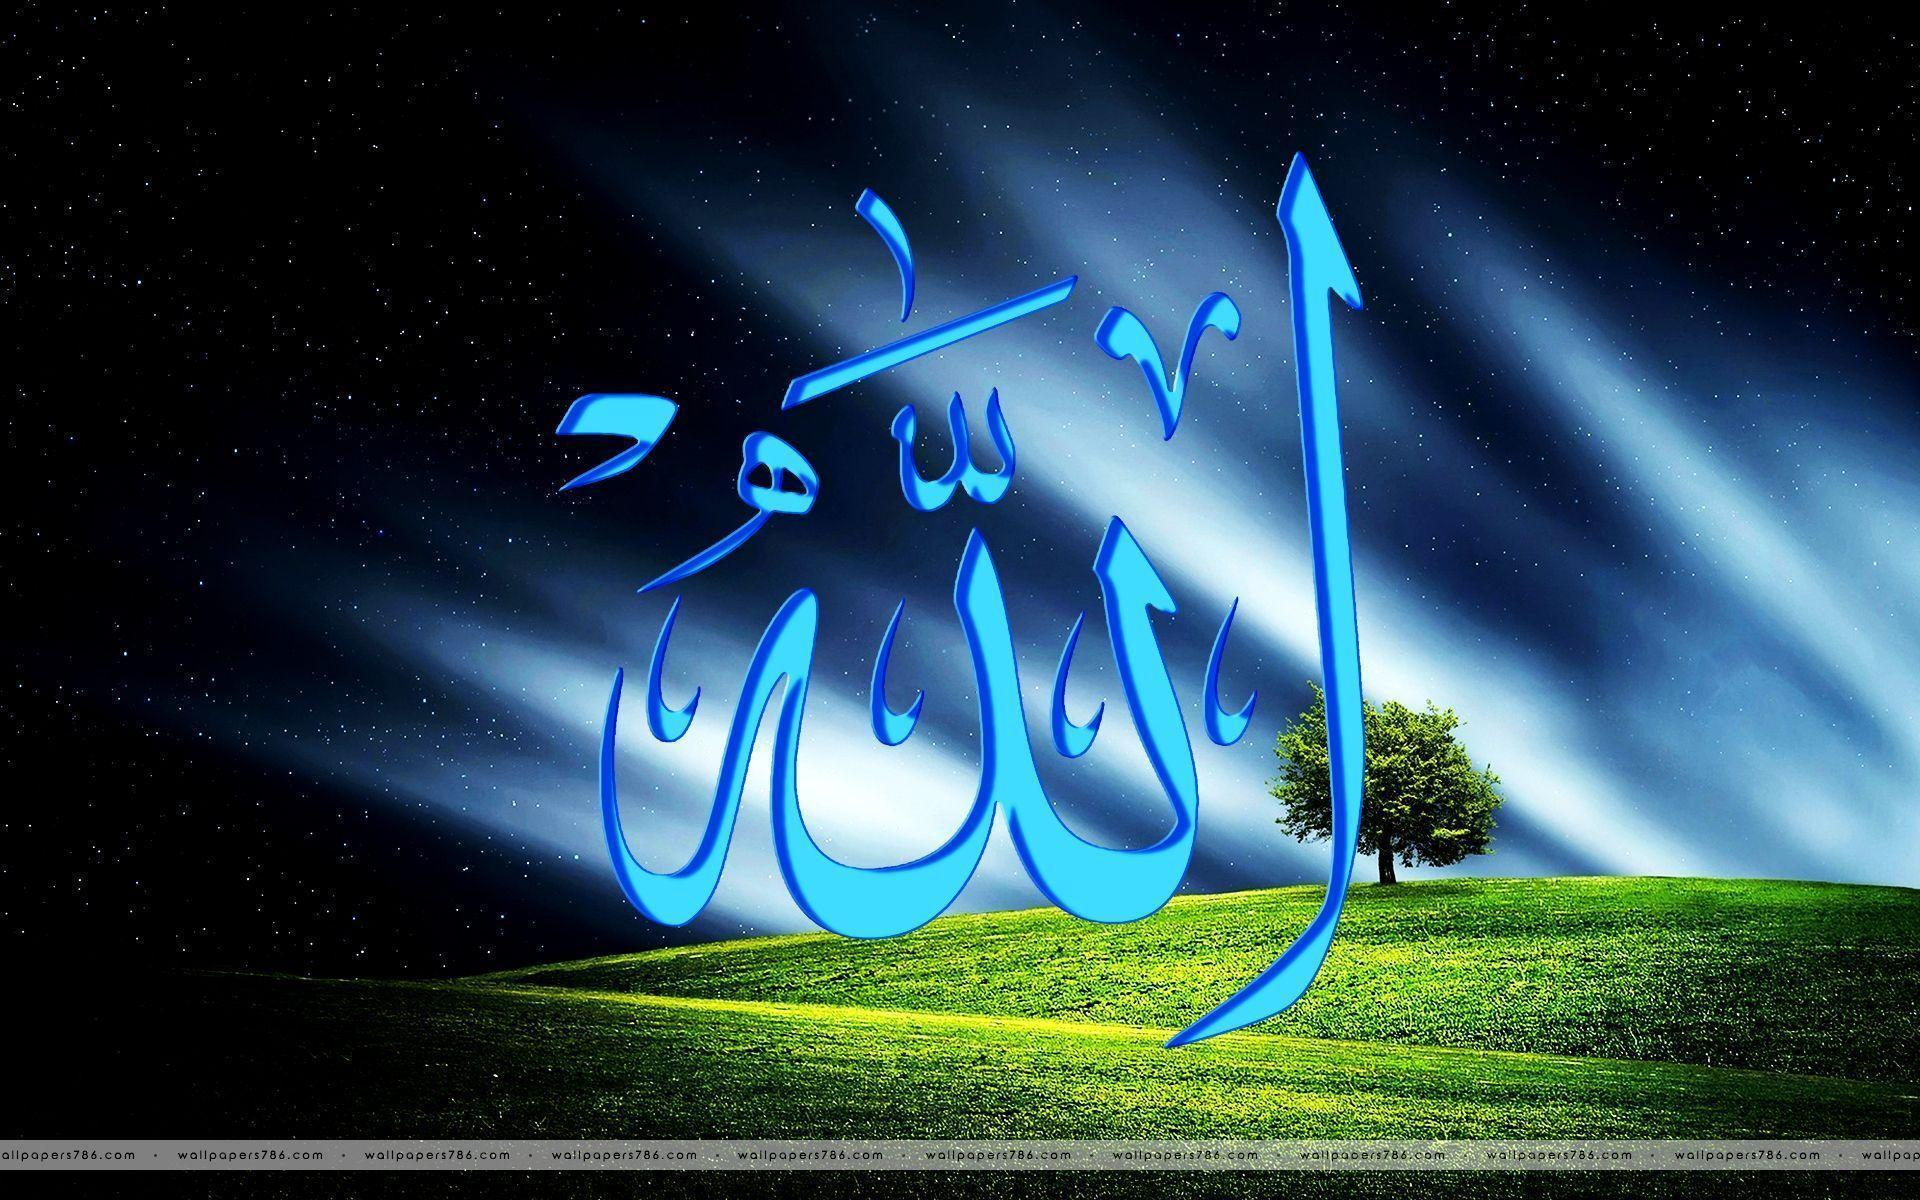 Allah wallpapers hd 2016 wallpaper cave - Name wallpapers free download ...